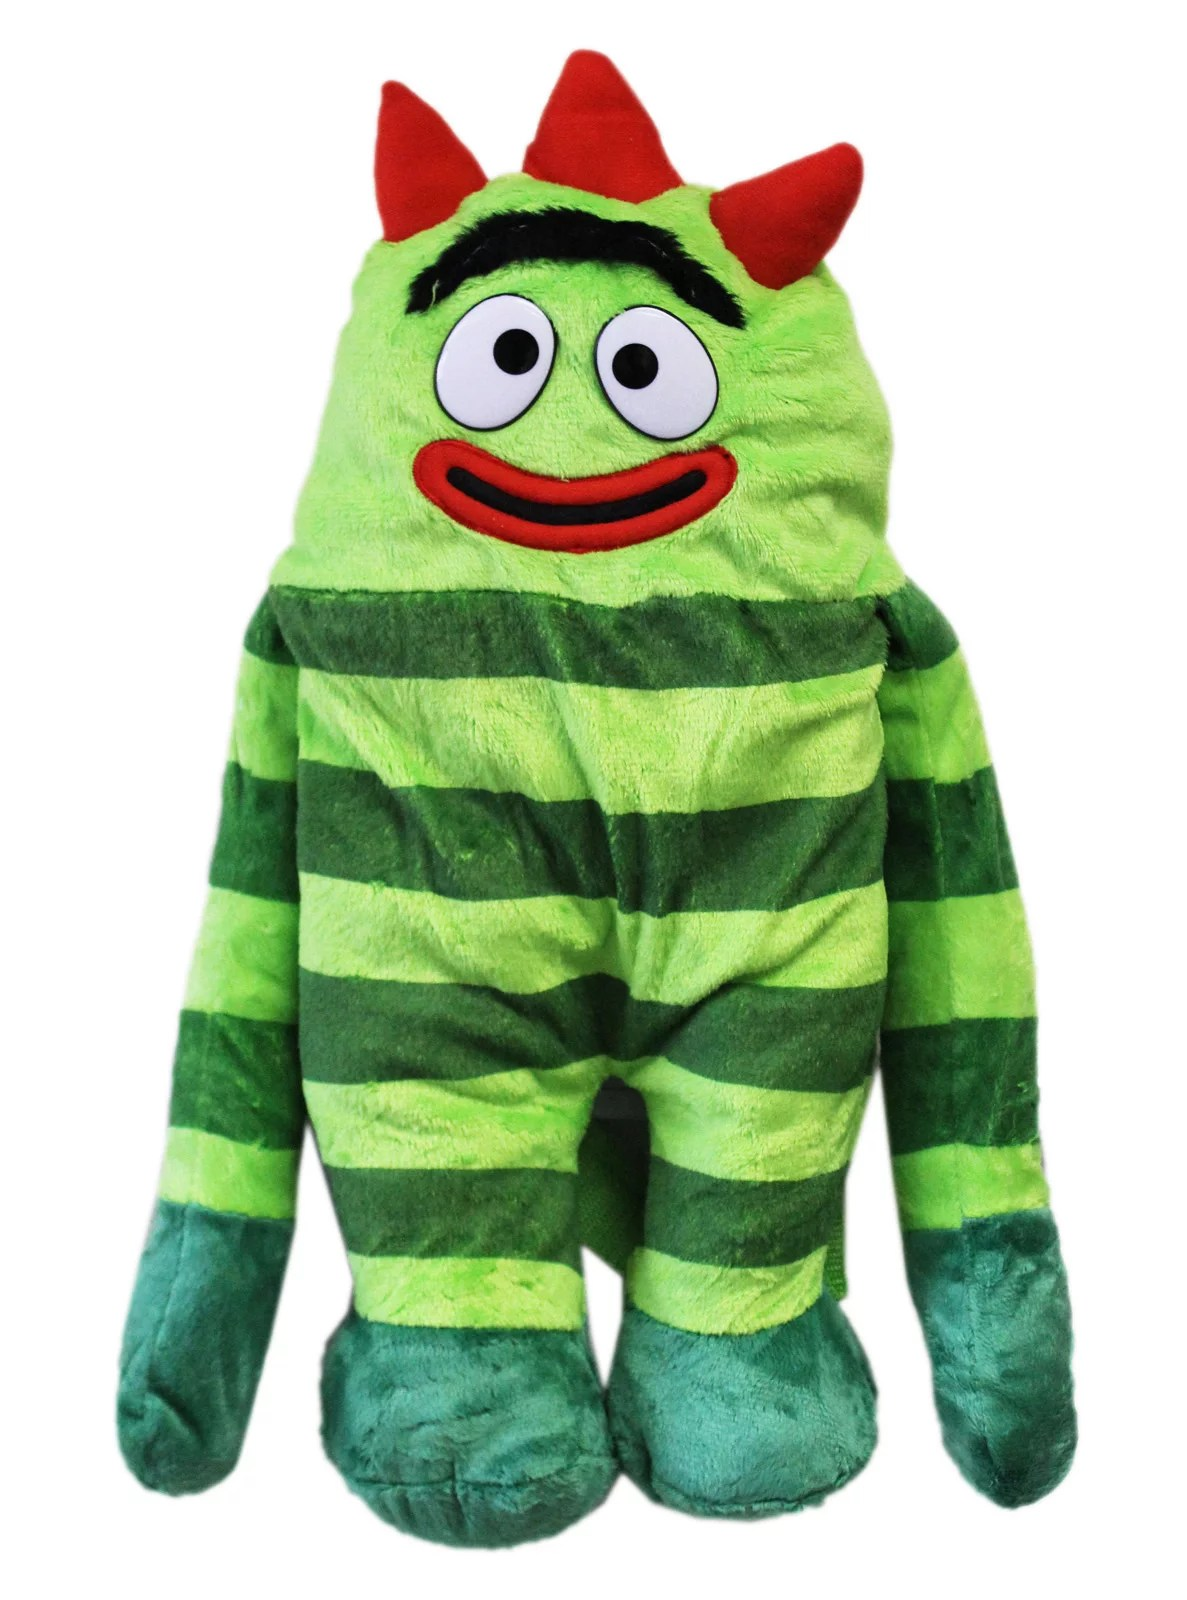 Yo Gabba Gabba Brobee Plush Toy Backpack 17in Walmart